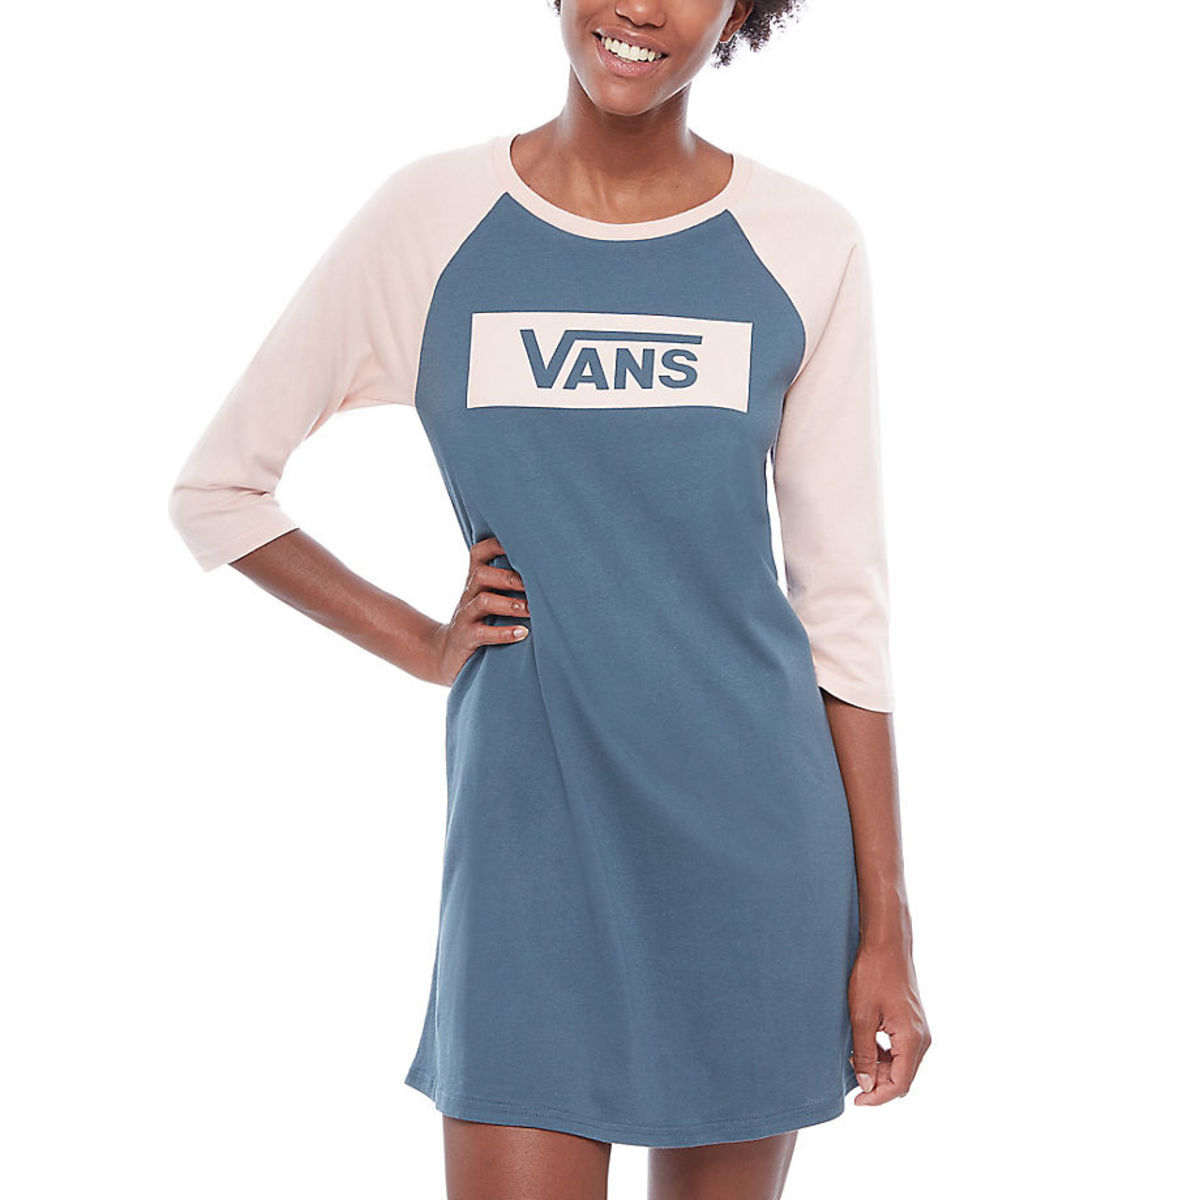 šaty VANS WM OPEN ROAD RAGLAN L